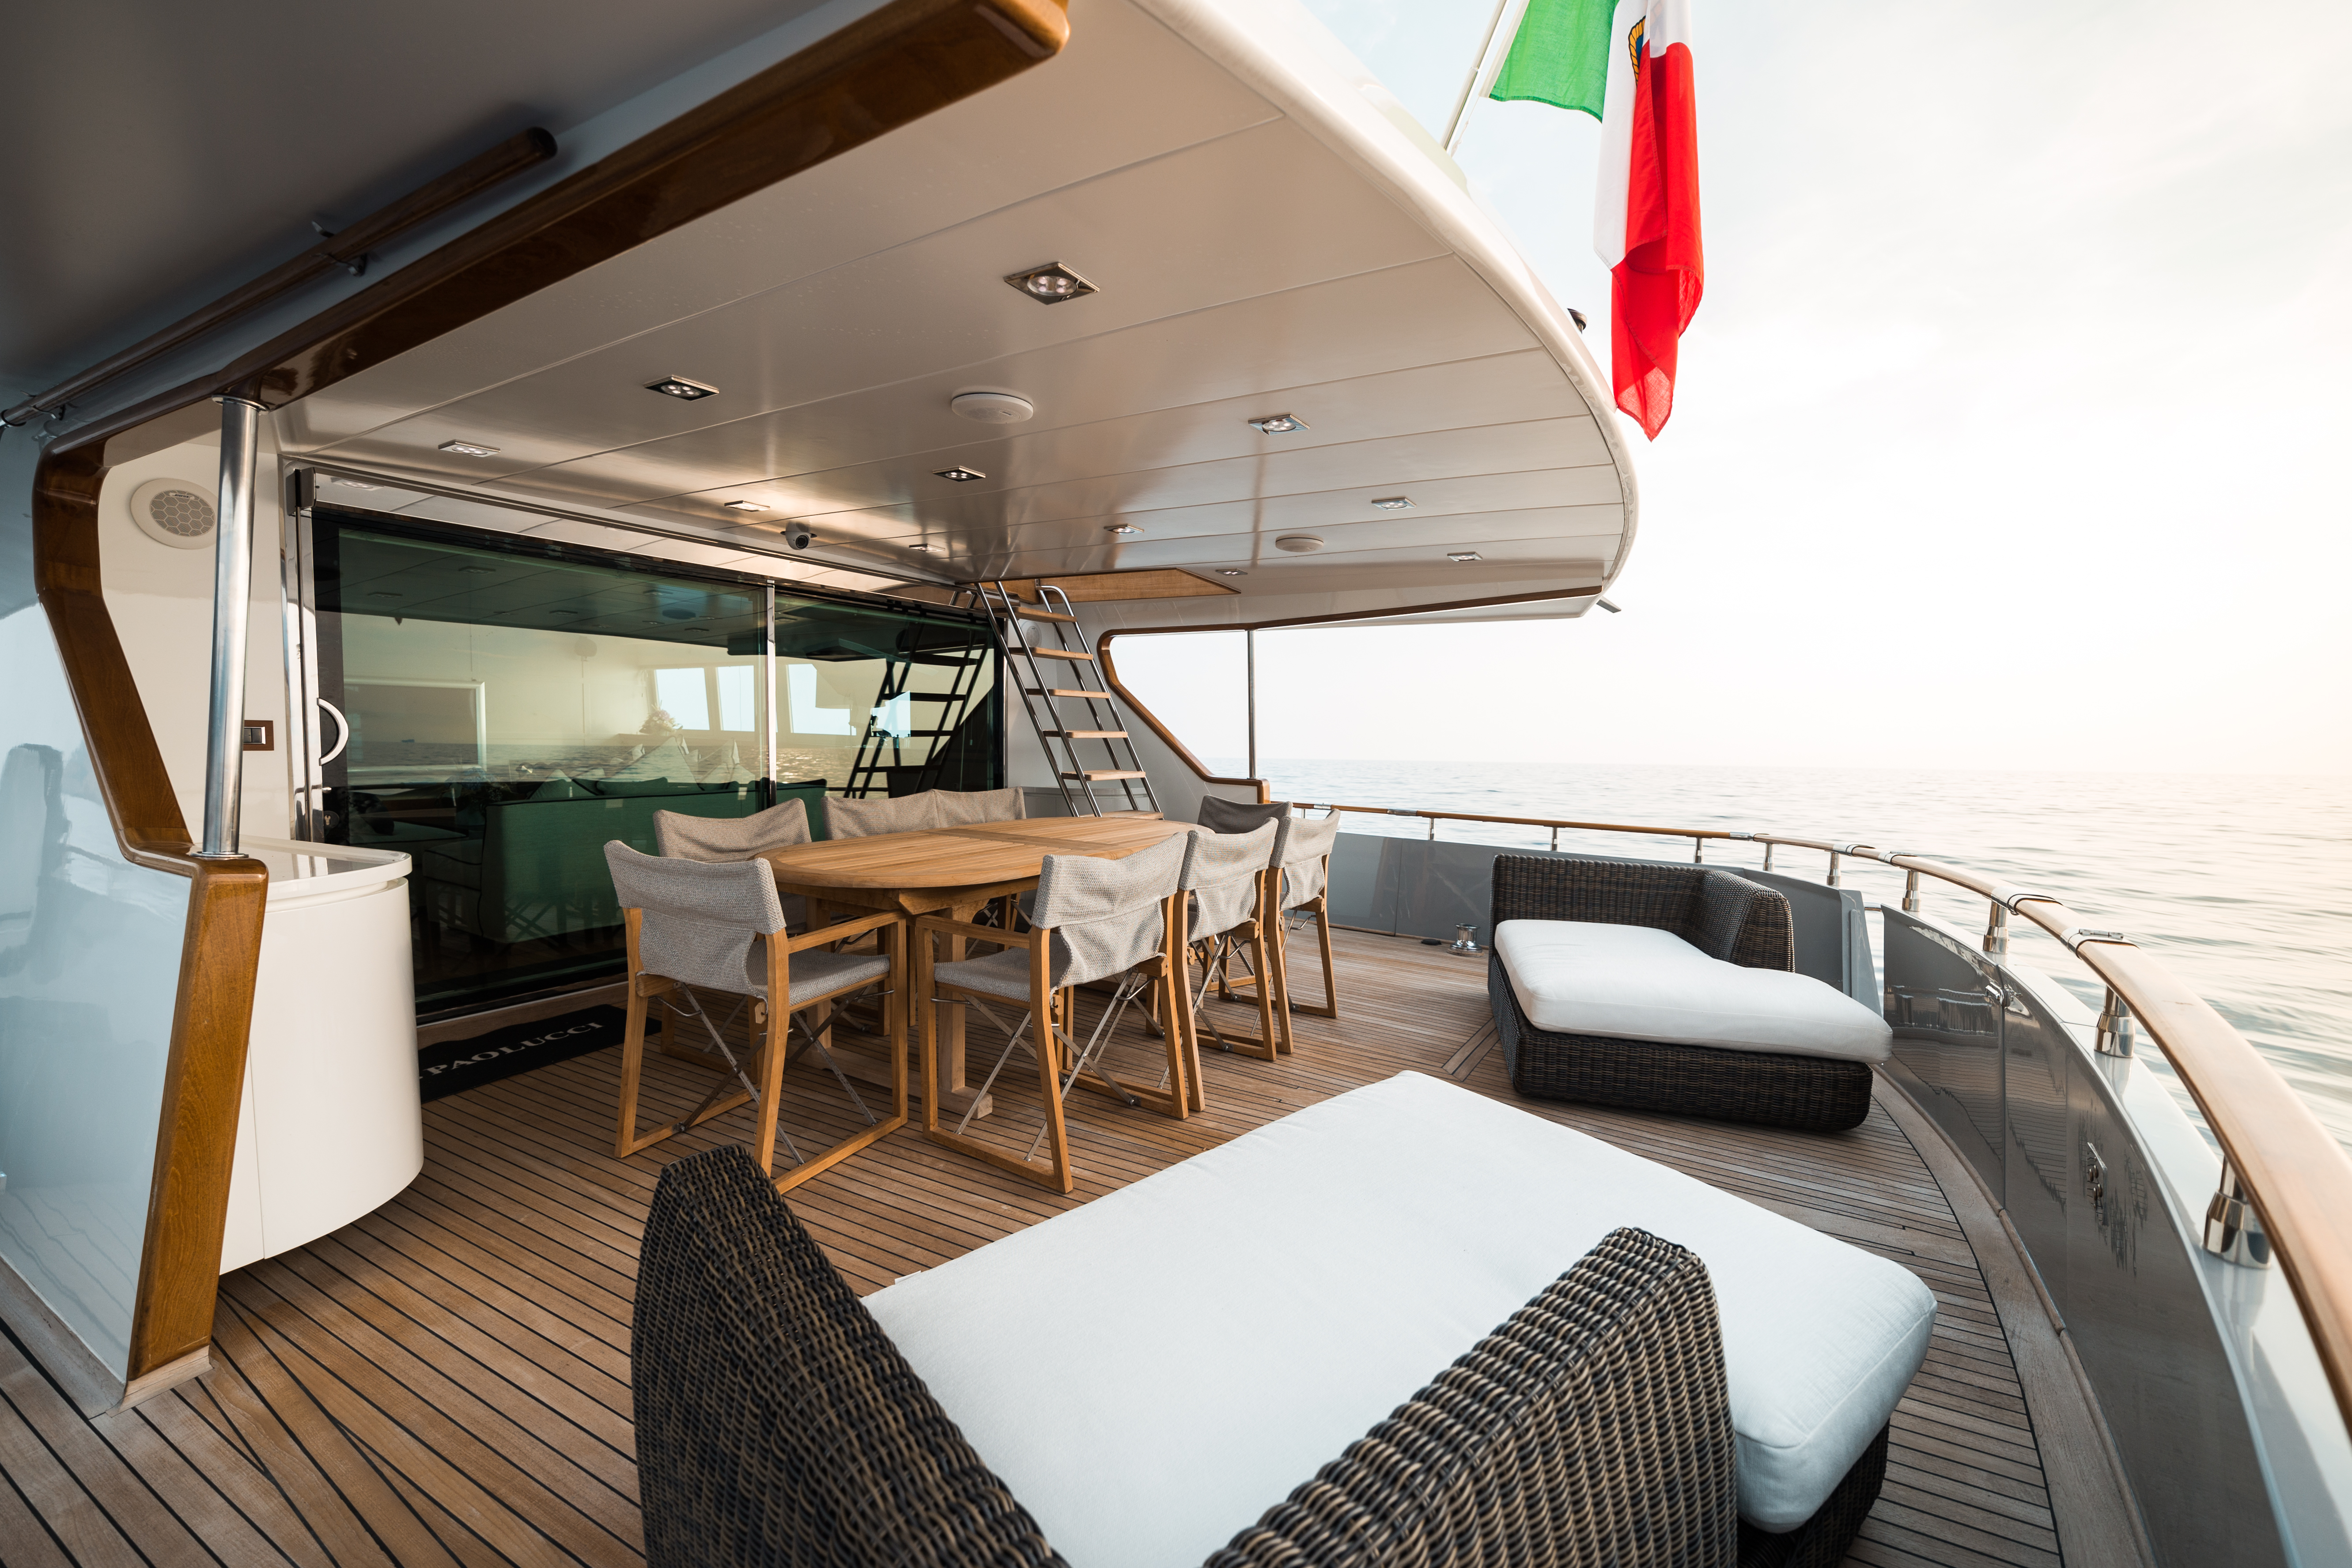 M/Y PAOLUCCI yacht for charter after deck